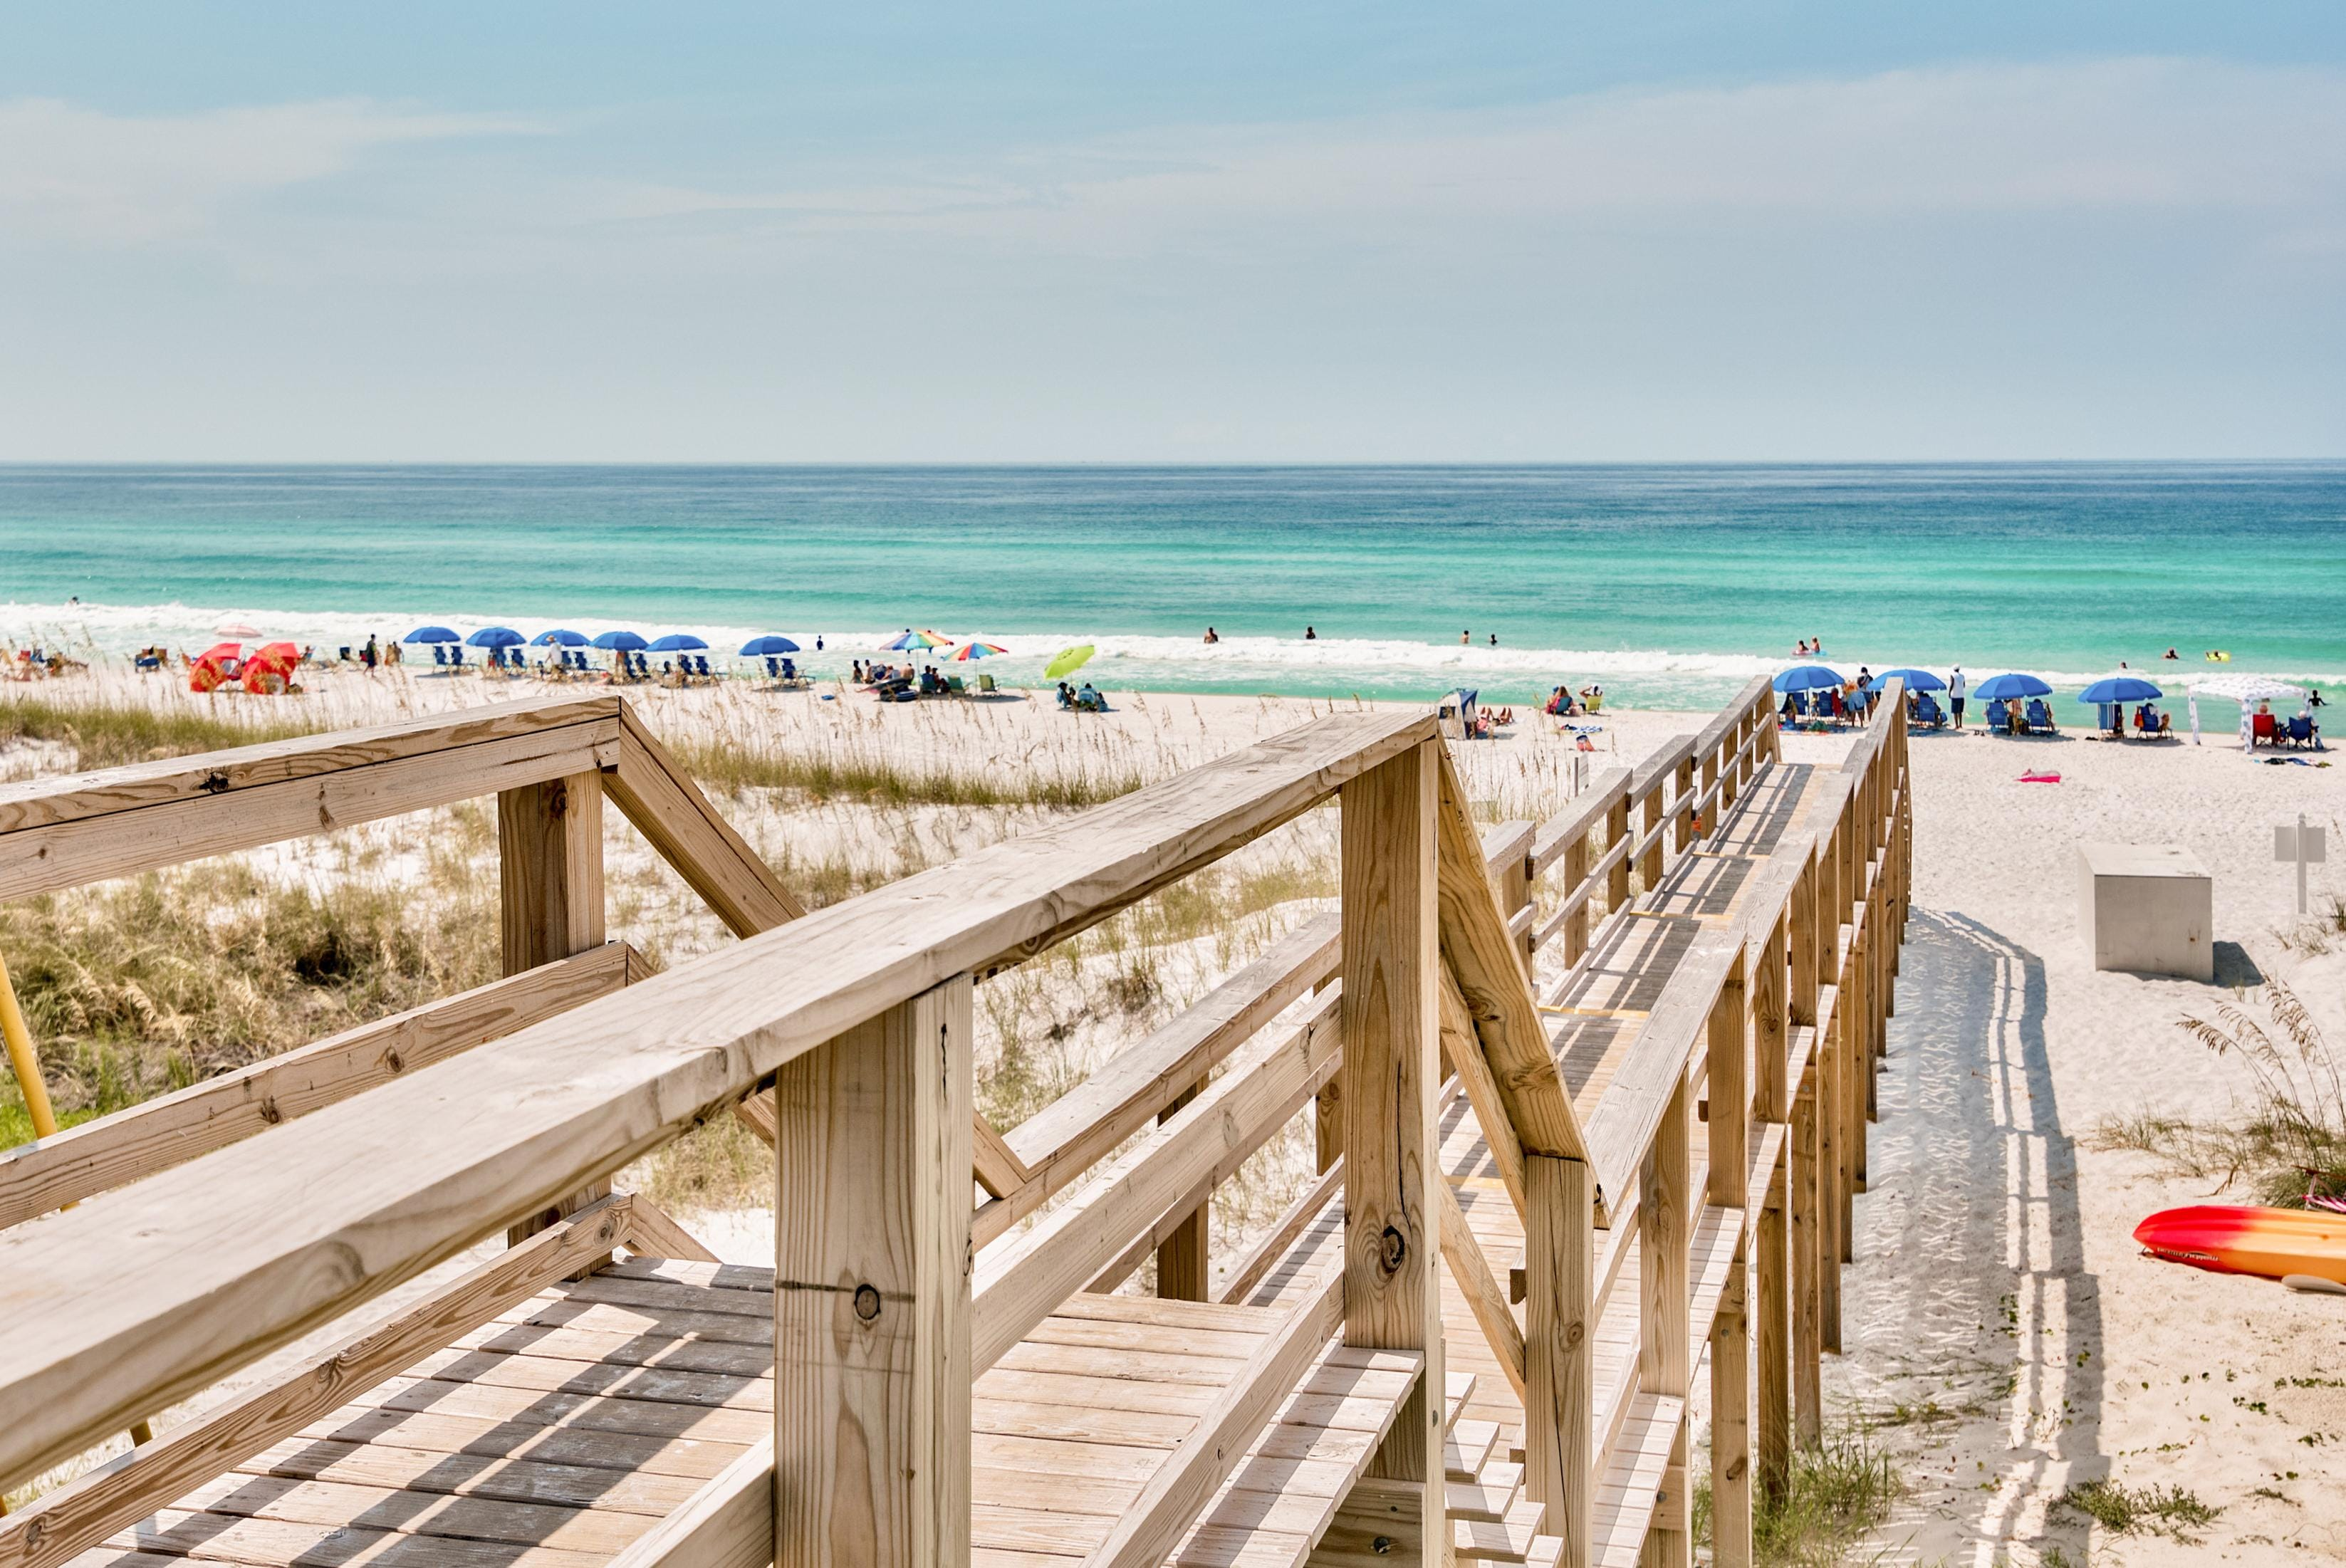 The sugar-white sandy beach is only 75 yards away and has a private beach access from your home!